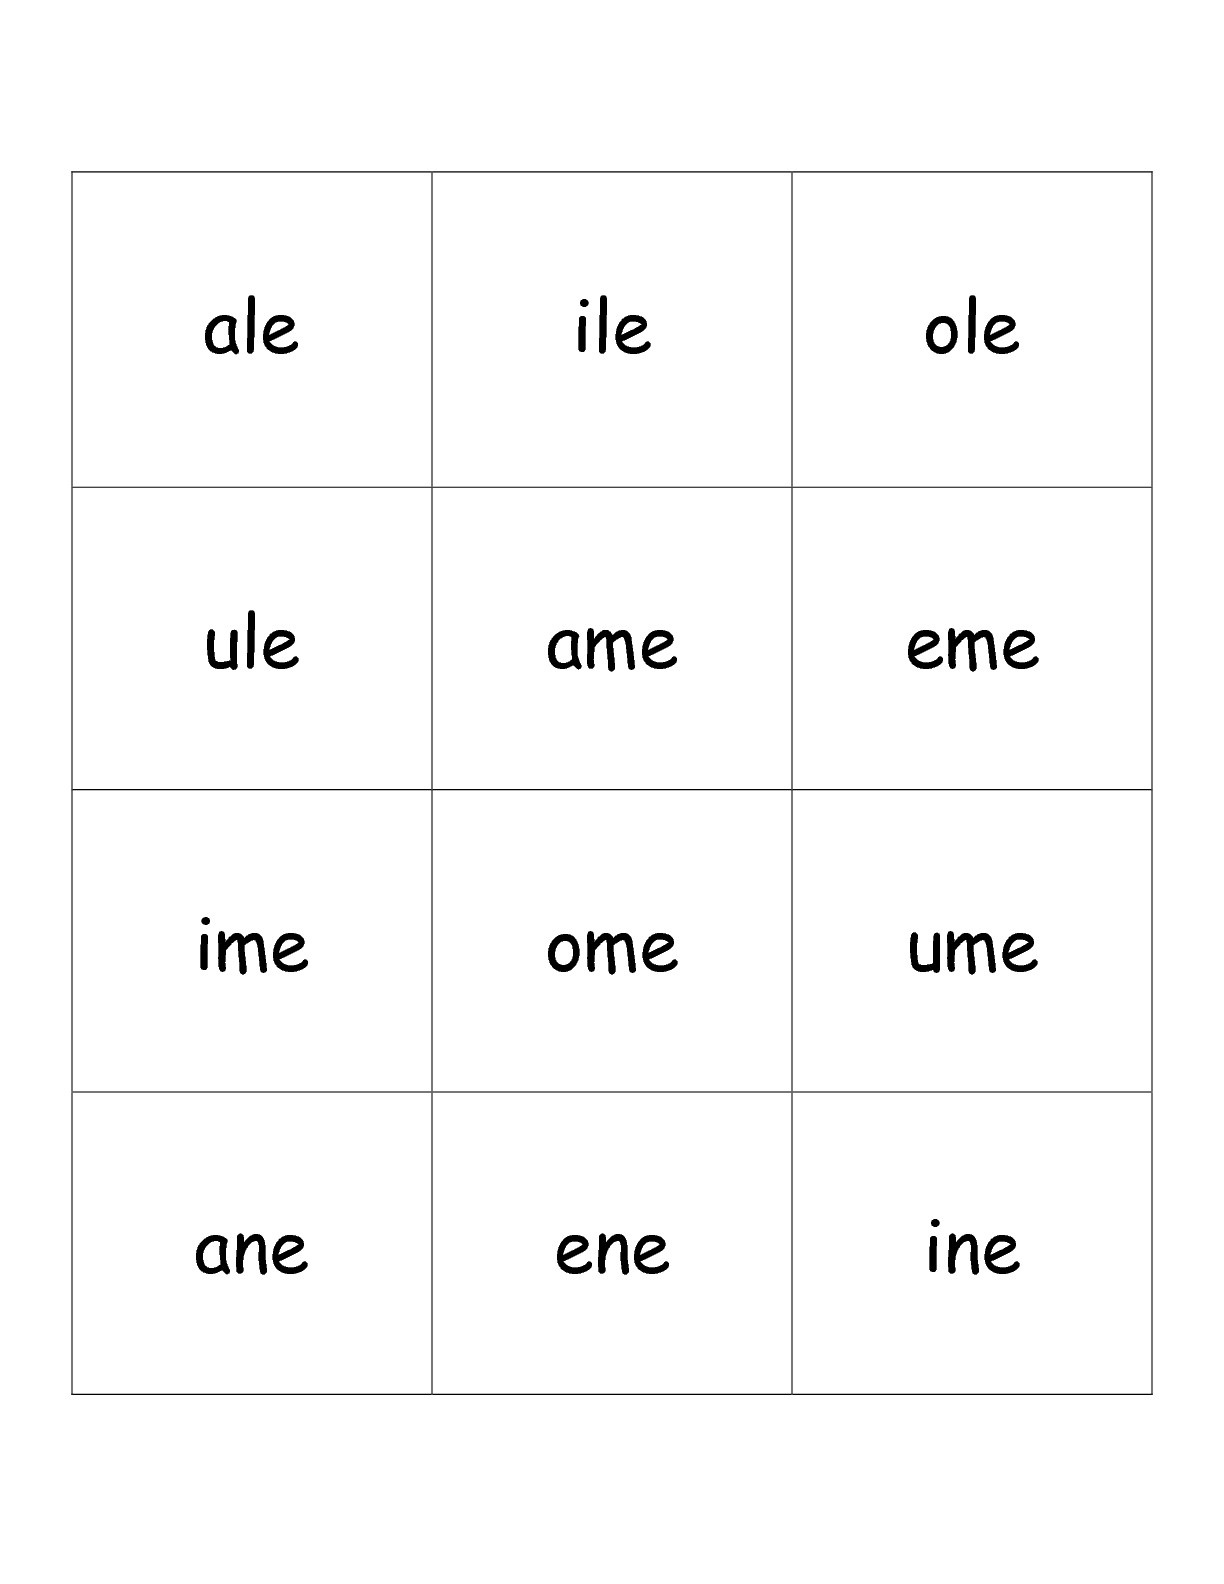 Free Phonics Printouts From The Teacher's Guide - Free Printable Phonics Flashcards With Pictures